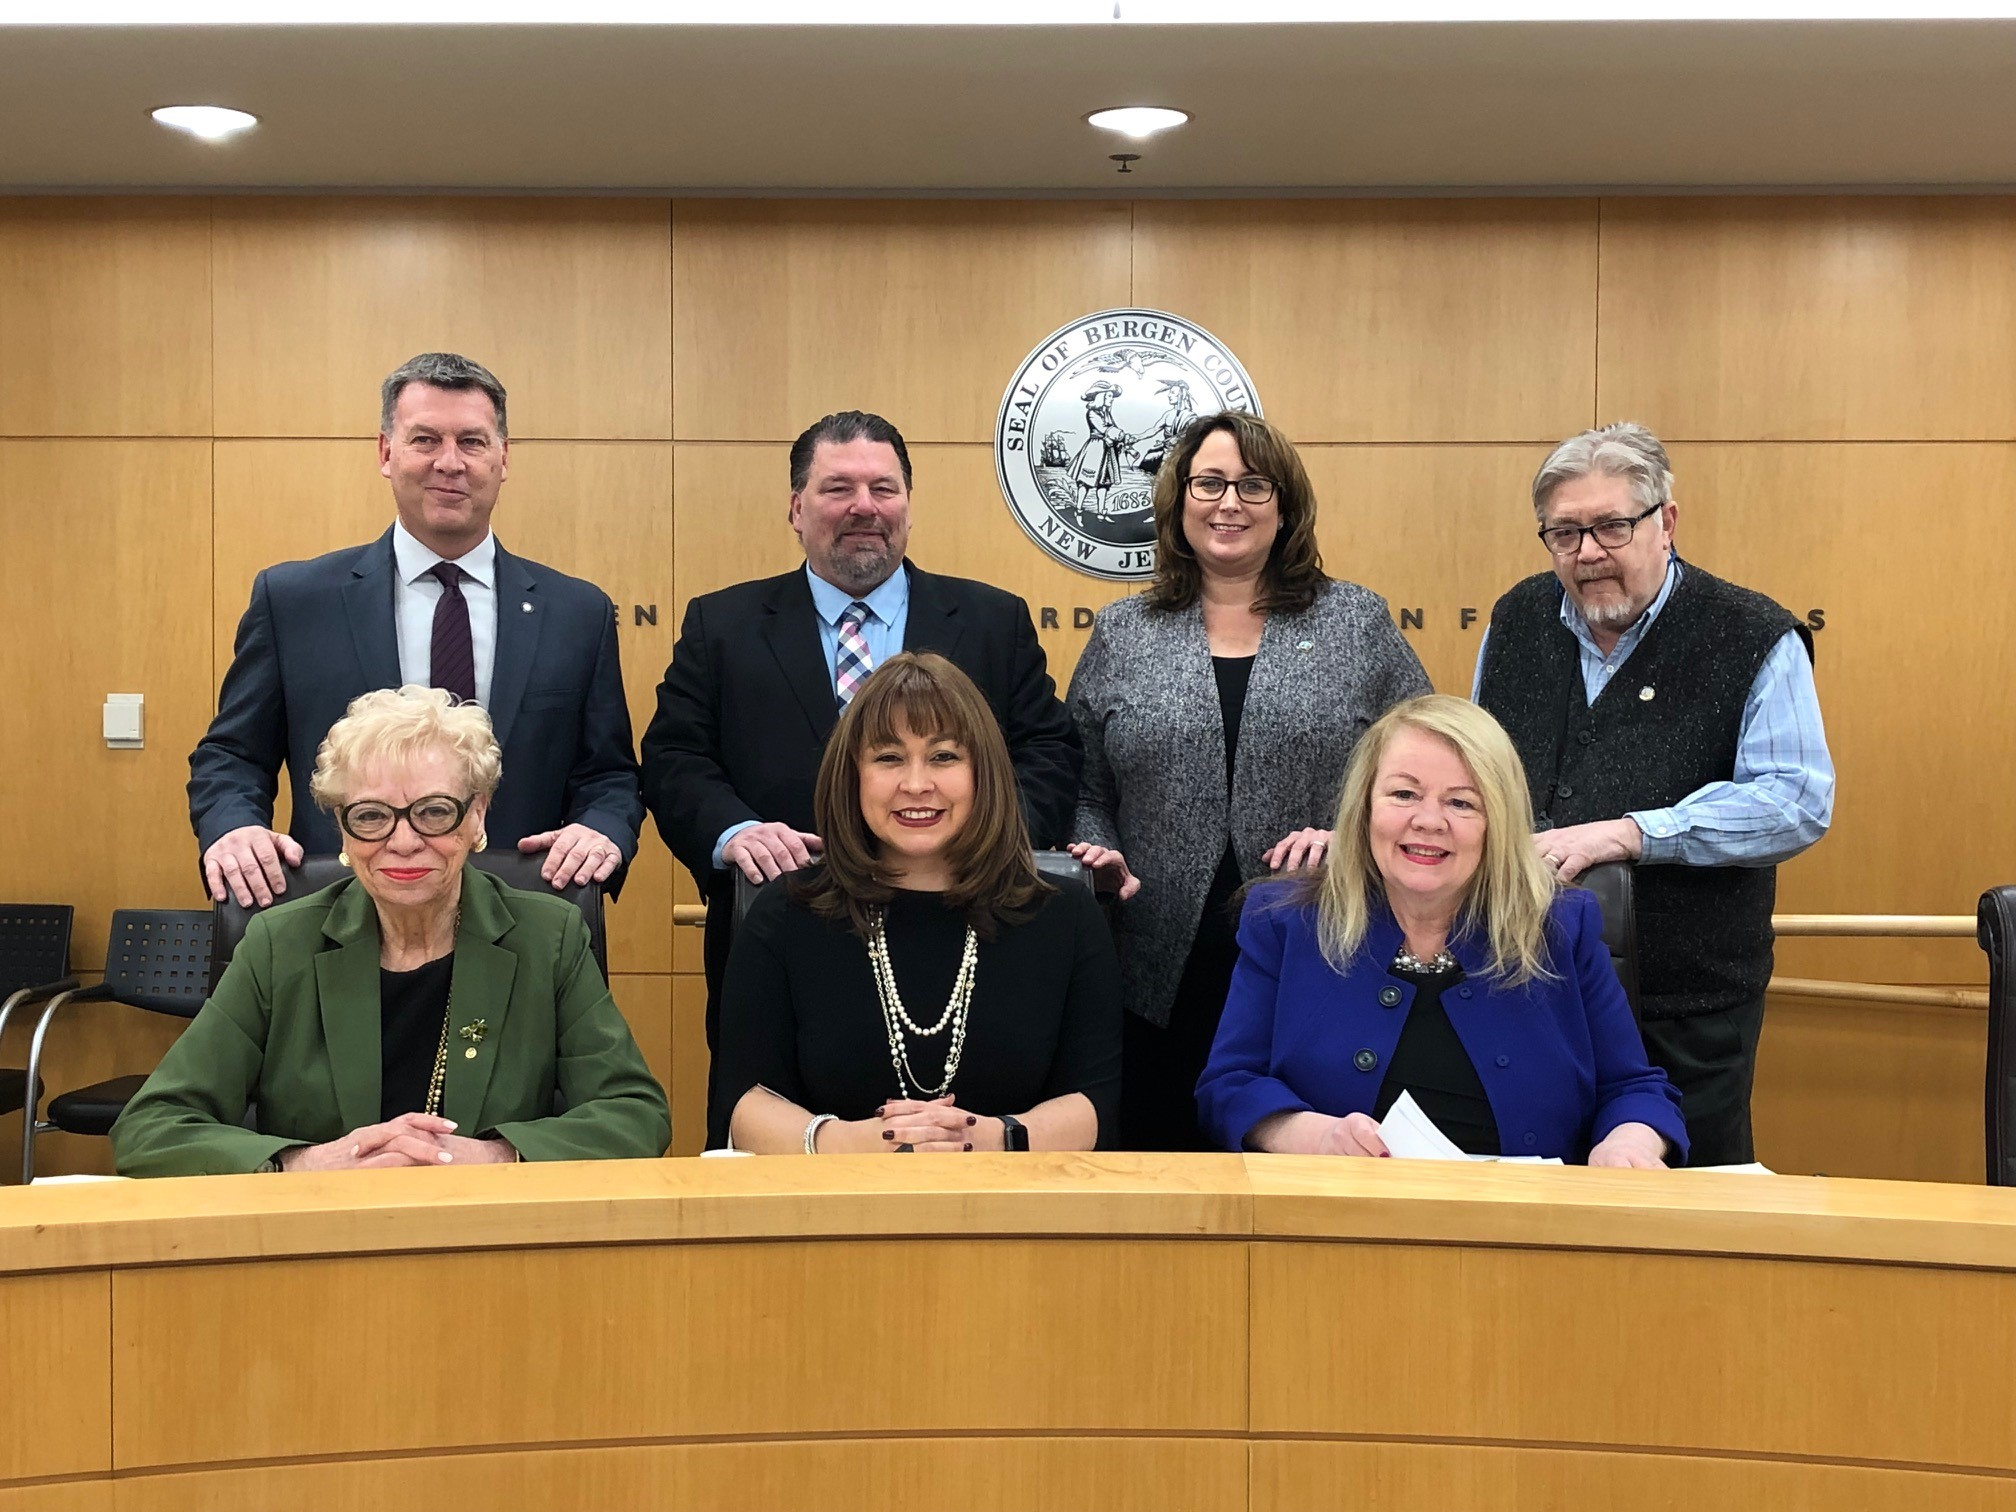 Bergen County Freeholders